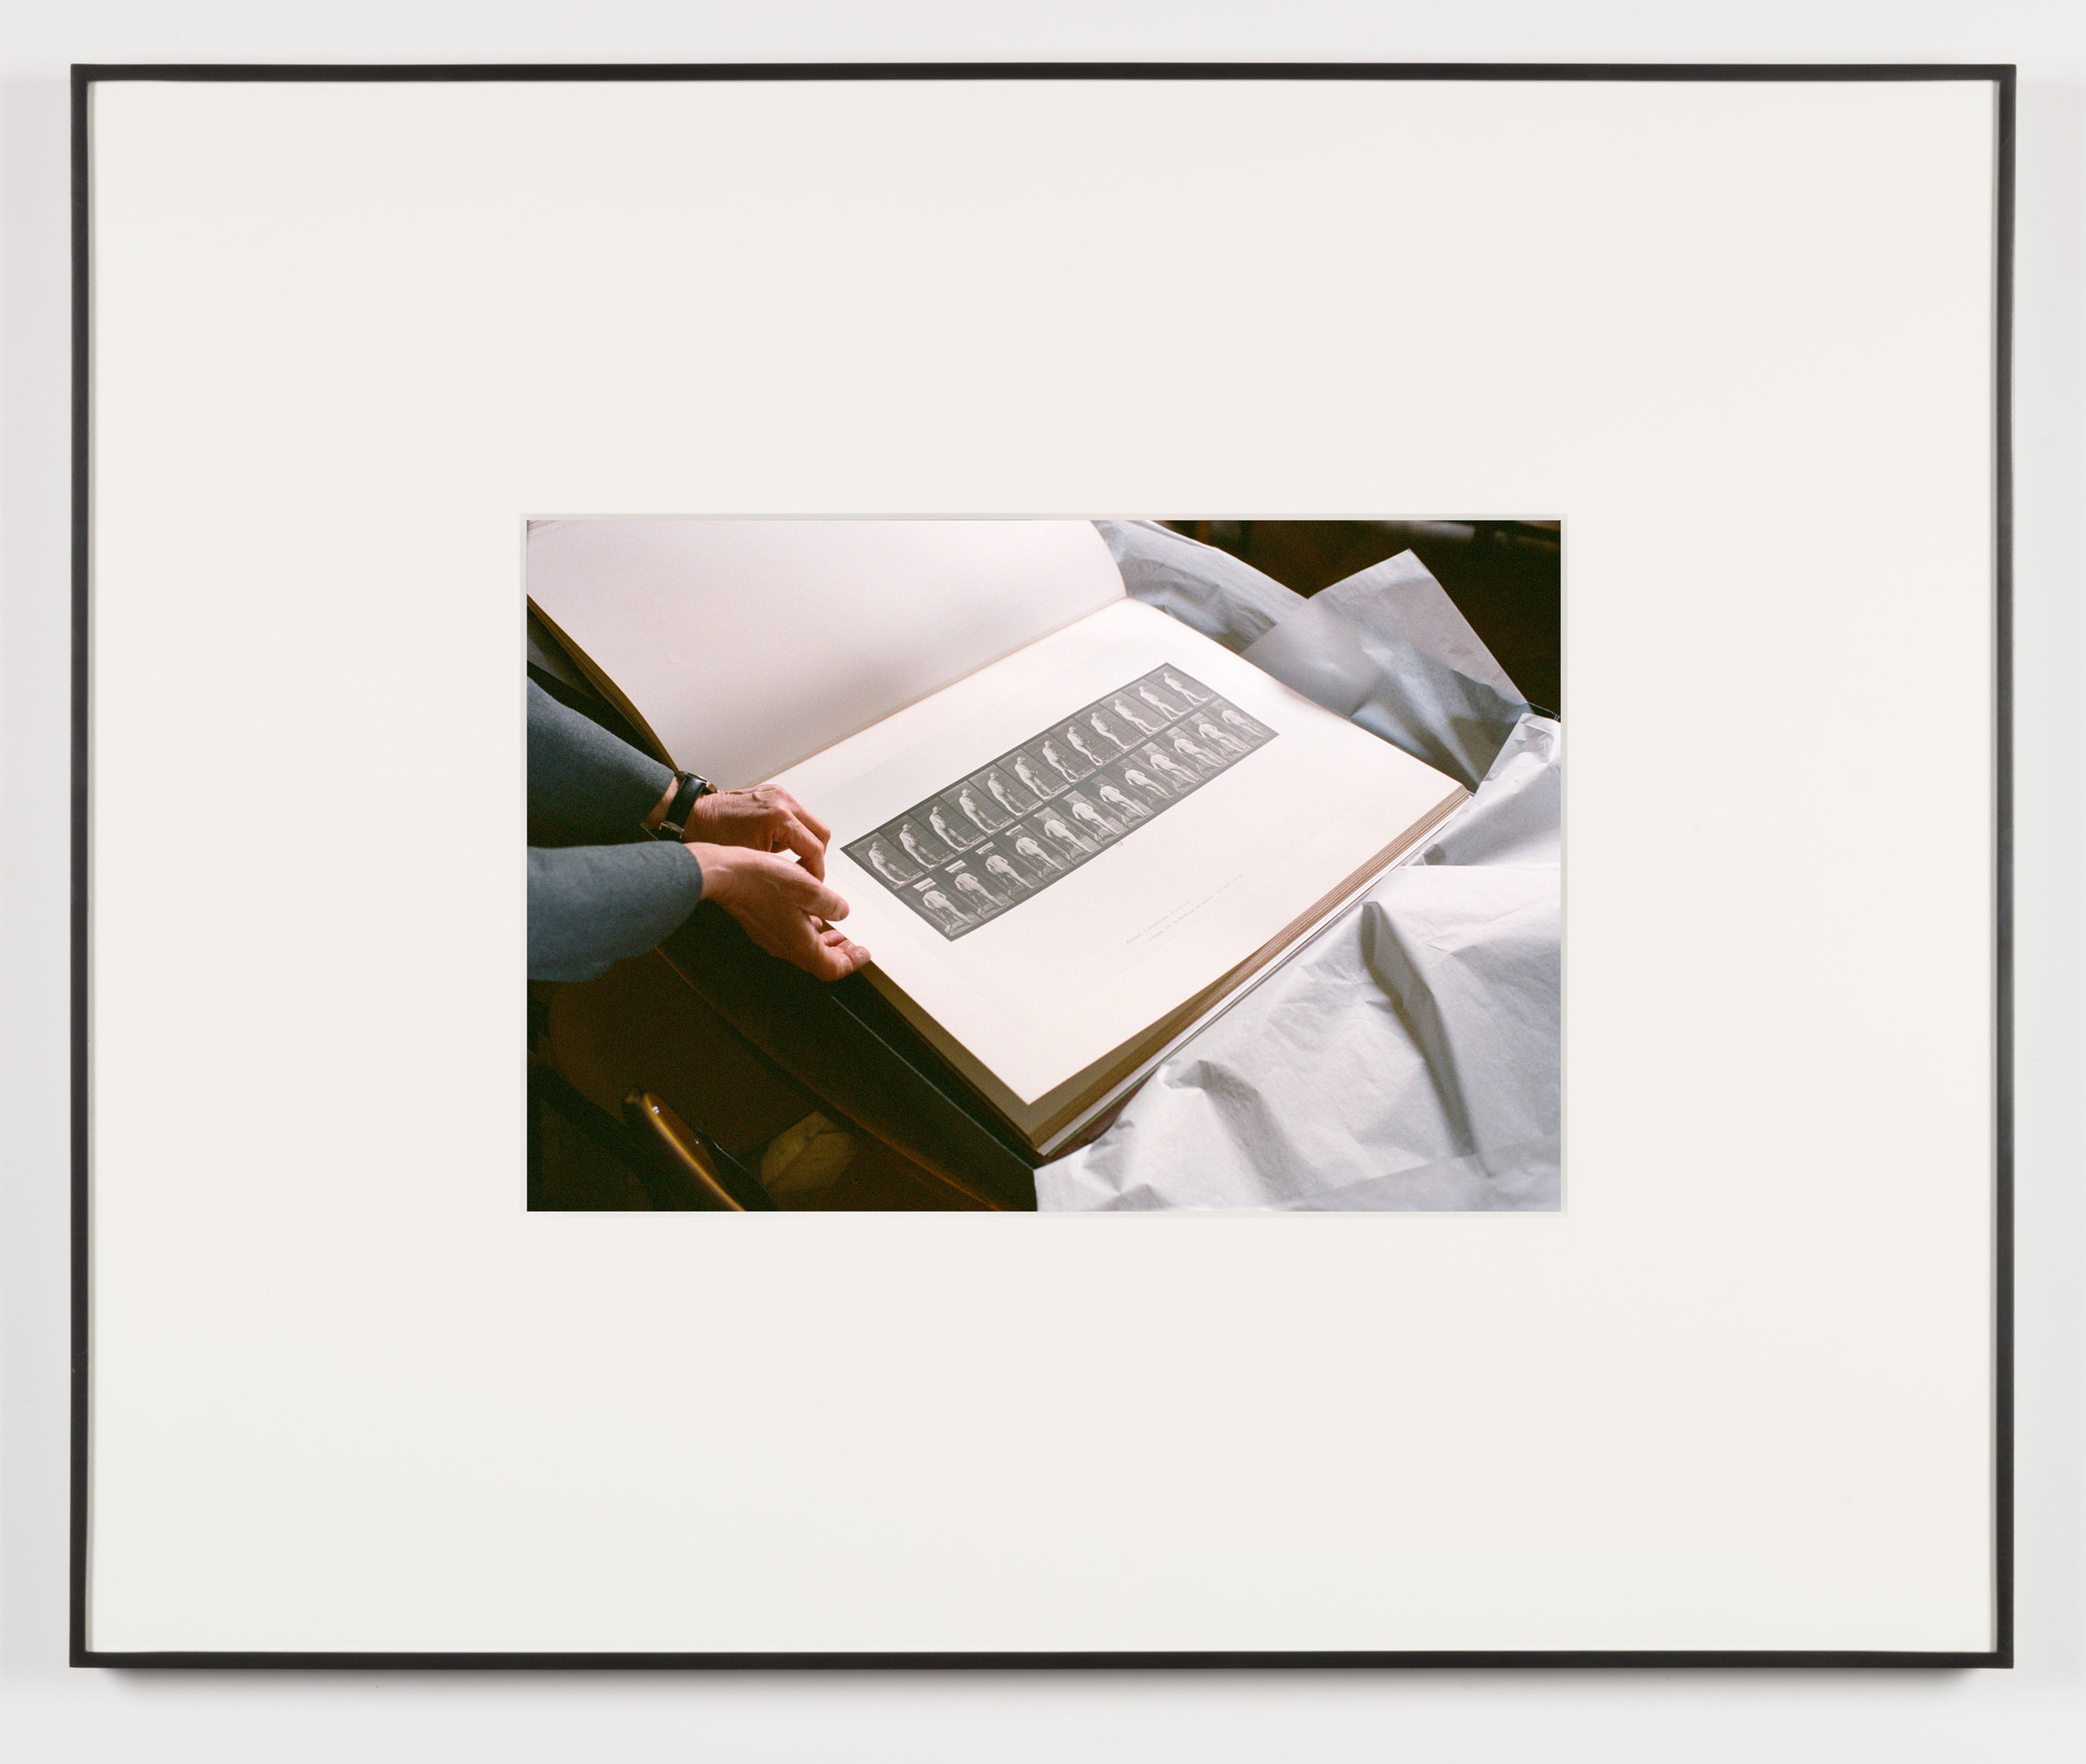 Der Herrscher (Paris, France, March 12, 2013)    2014   Chromogenic print  13 1/2 x 20 inches   Selected Bodies of Work, 2014